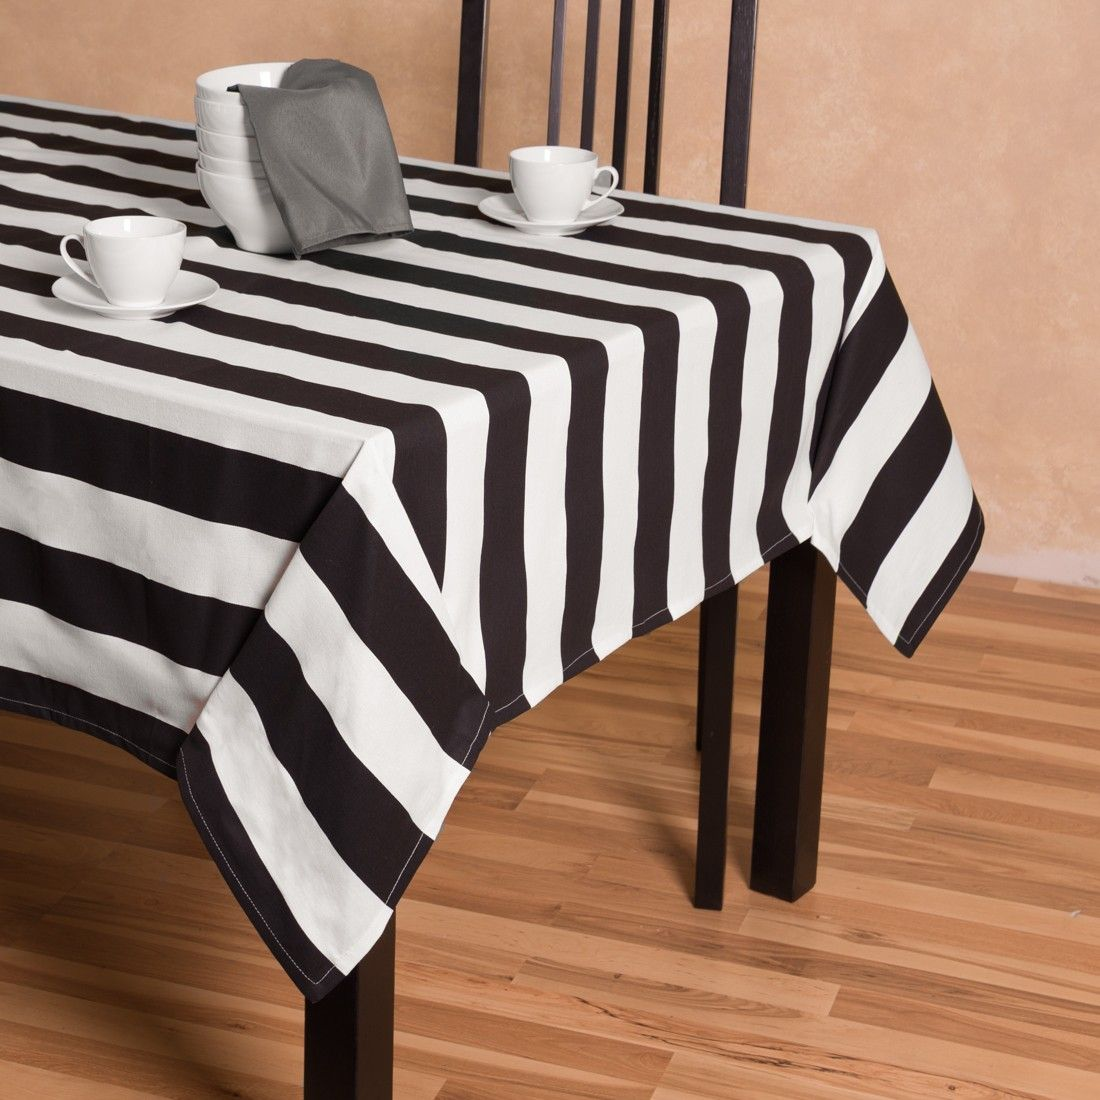 Amazing Stripes Rectangular Cotton Tablecloth Black U0026 White Part 15